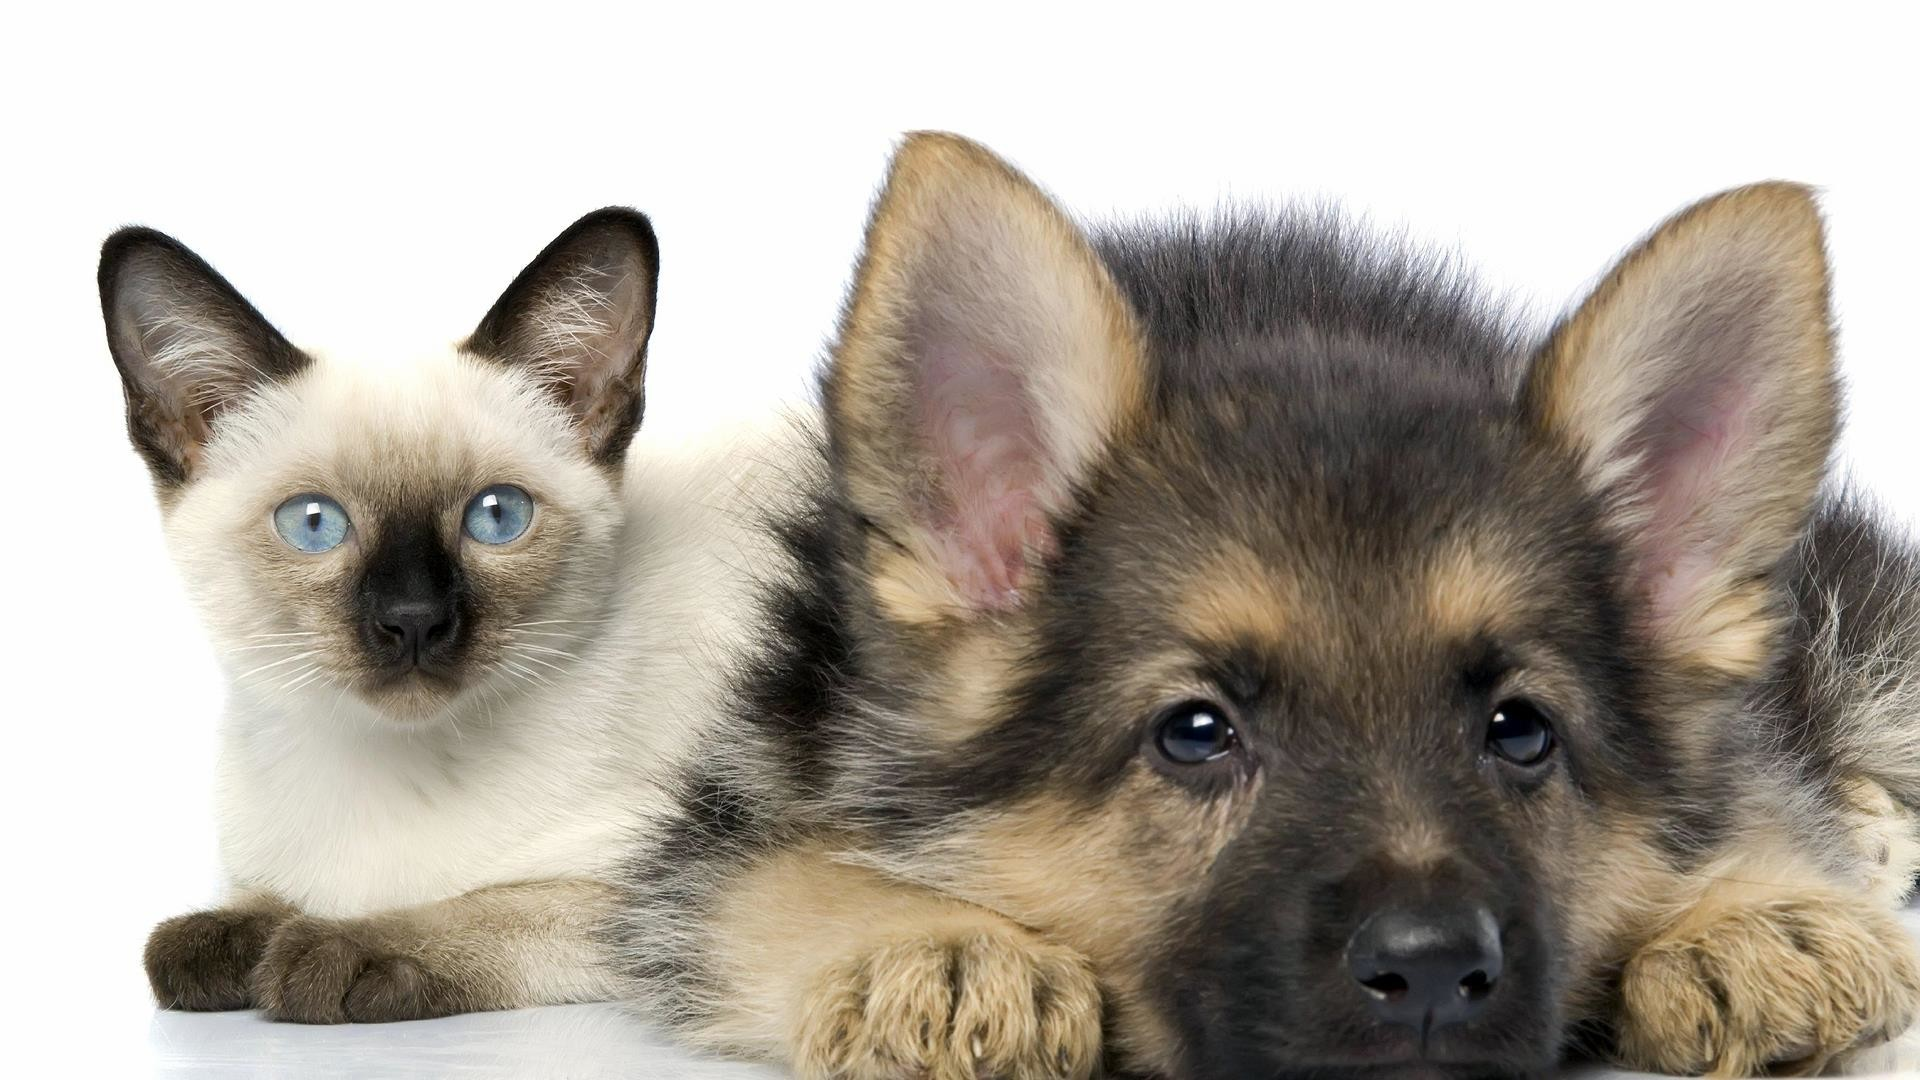 child-of-artemis: Cute Cats And Dogs Wallpaper